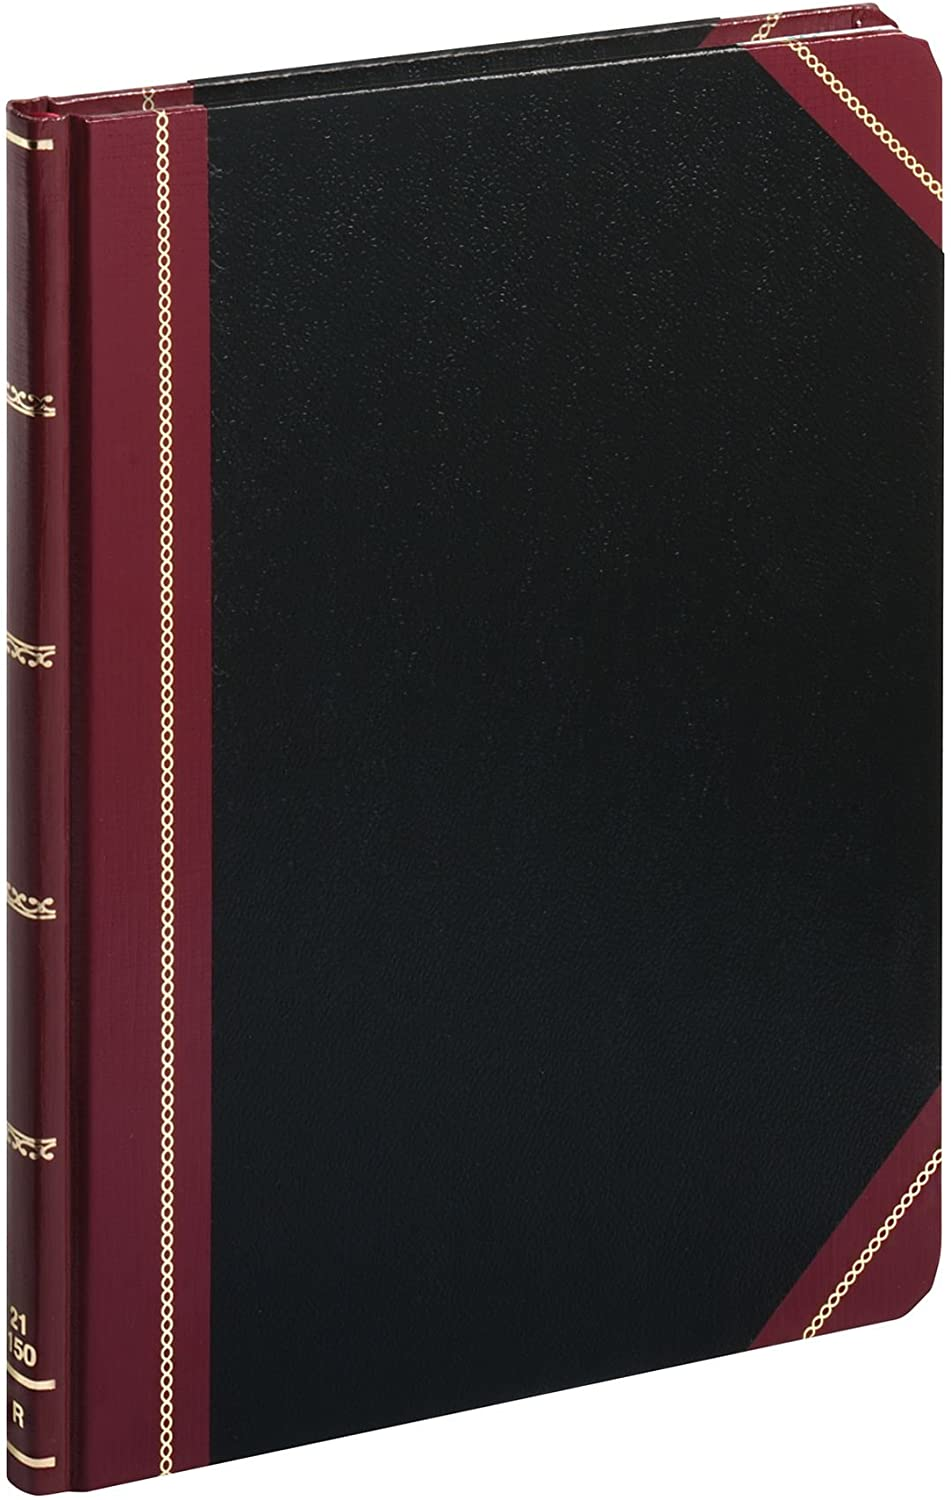 Boorum & Pease 21150R Columnar Accounting Book, Record Rule, Black Cover, 150 Pages, 8 1/8 x 10 3/8